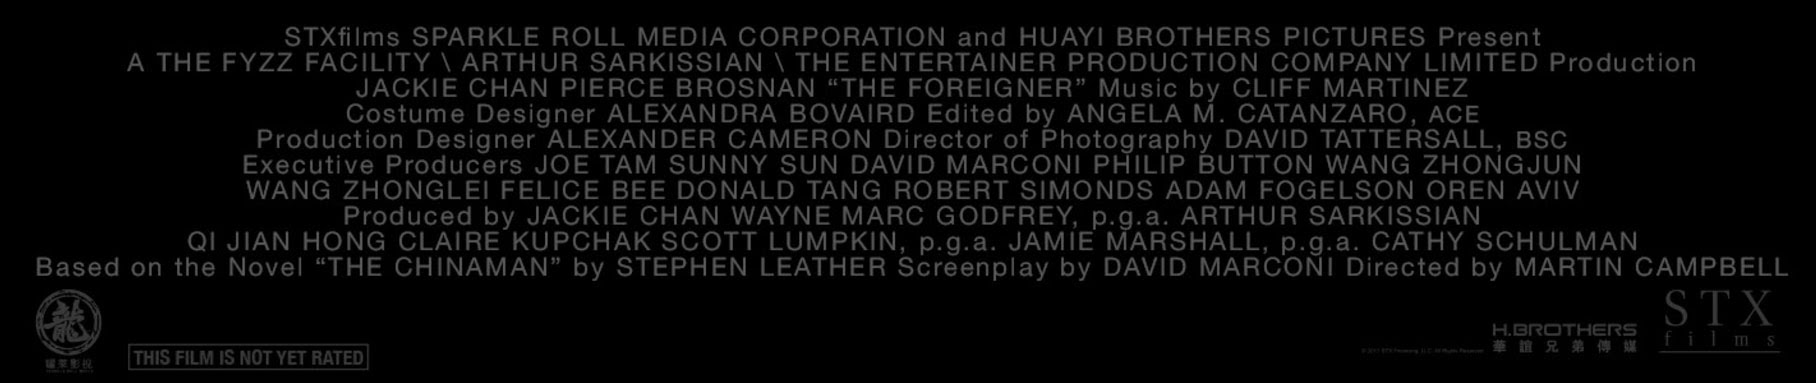 The Foreigner Stx Entertainment